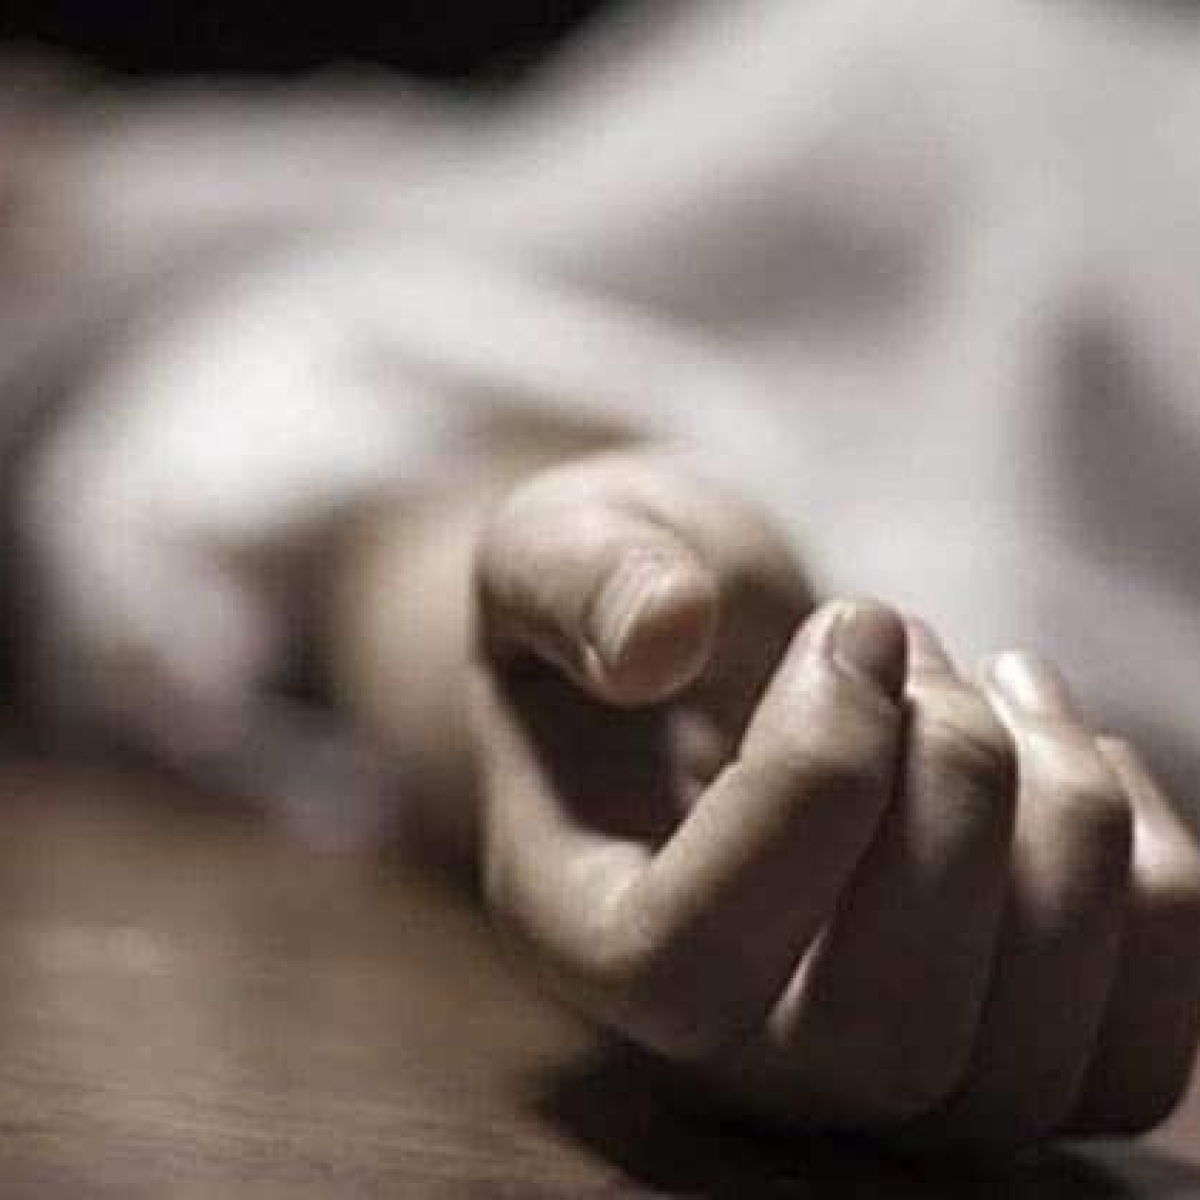 Mumbai: 56-year-old builder jumps to death from 15th floor in Matunga; police suggest he was under depression